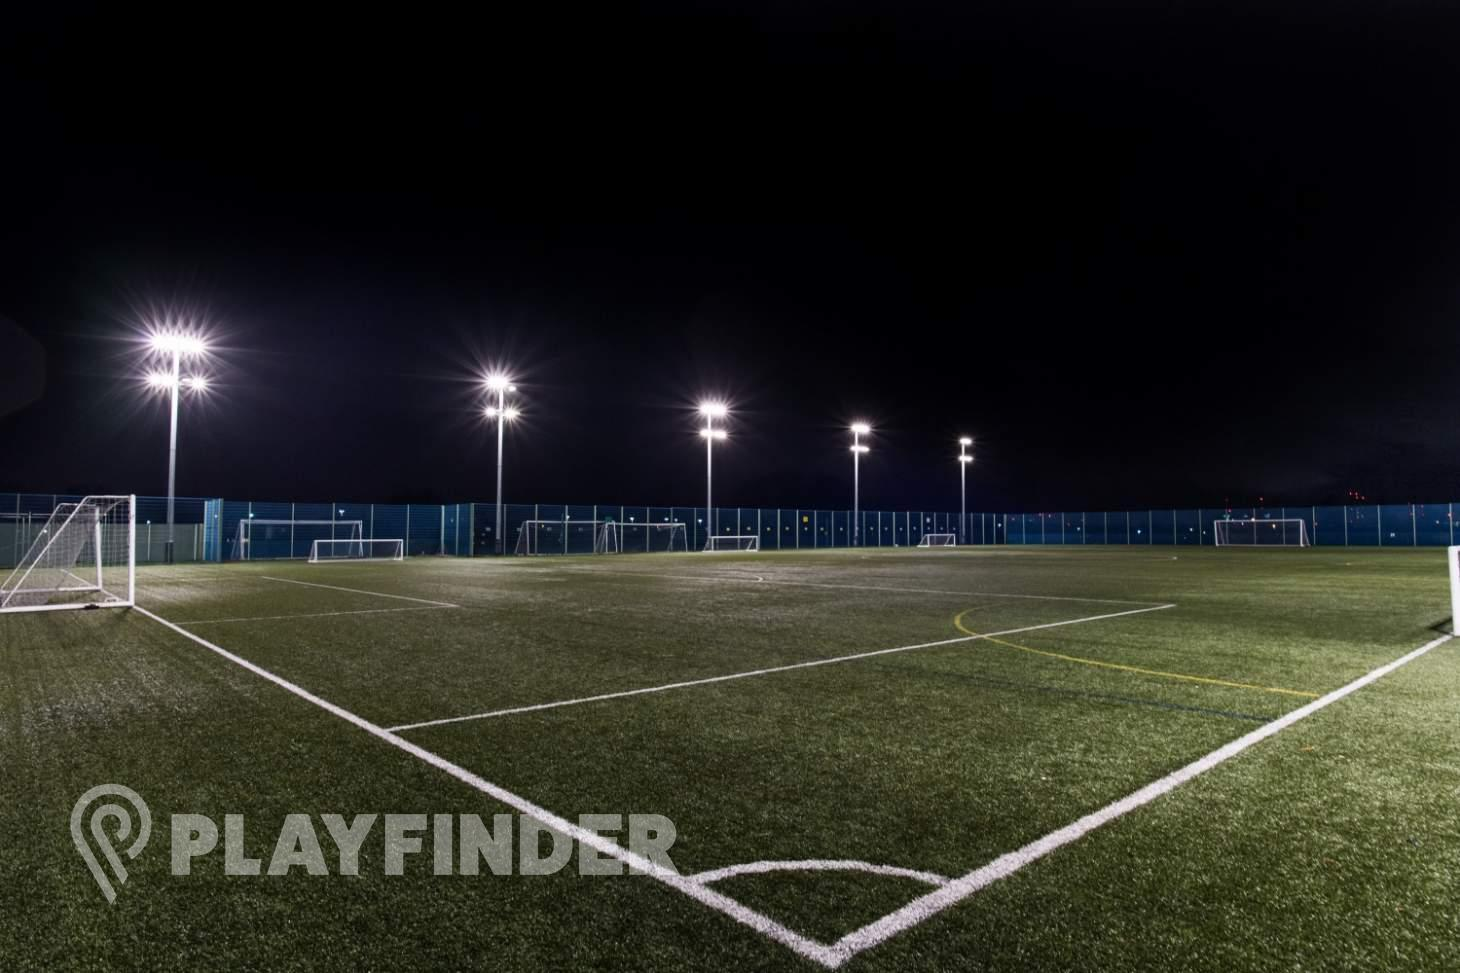 East Manchester Academy 11 a side | 3G Astroturf football pitch